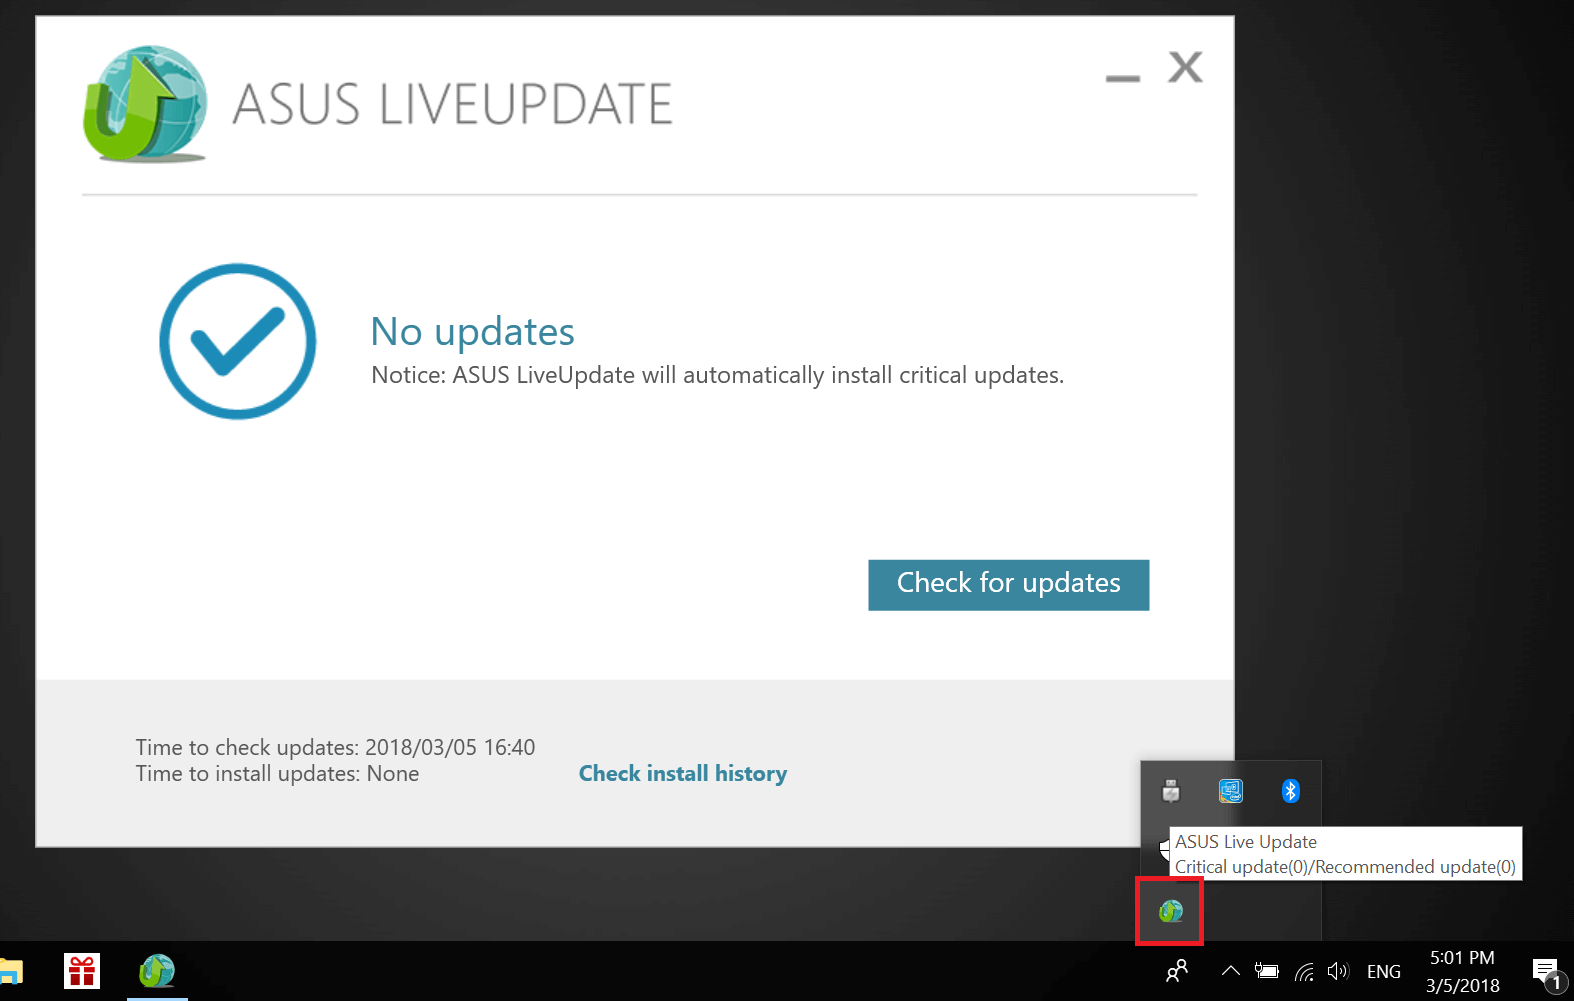 ASUS live update in icon bar